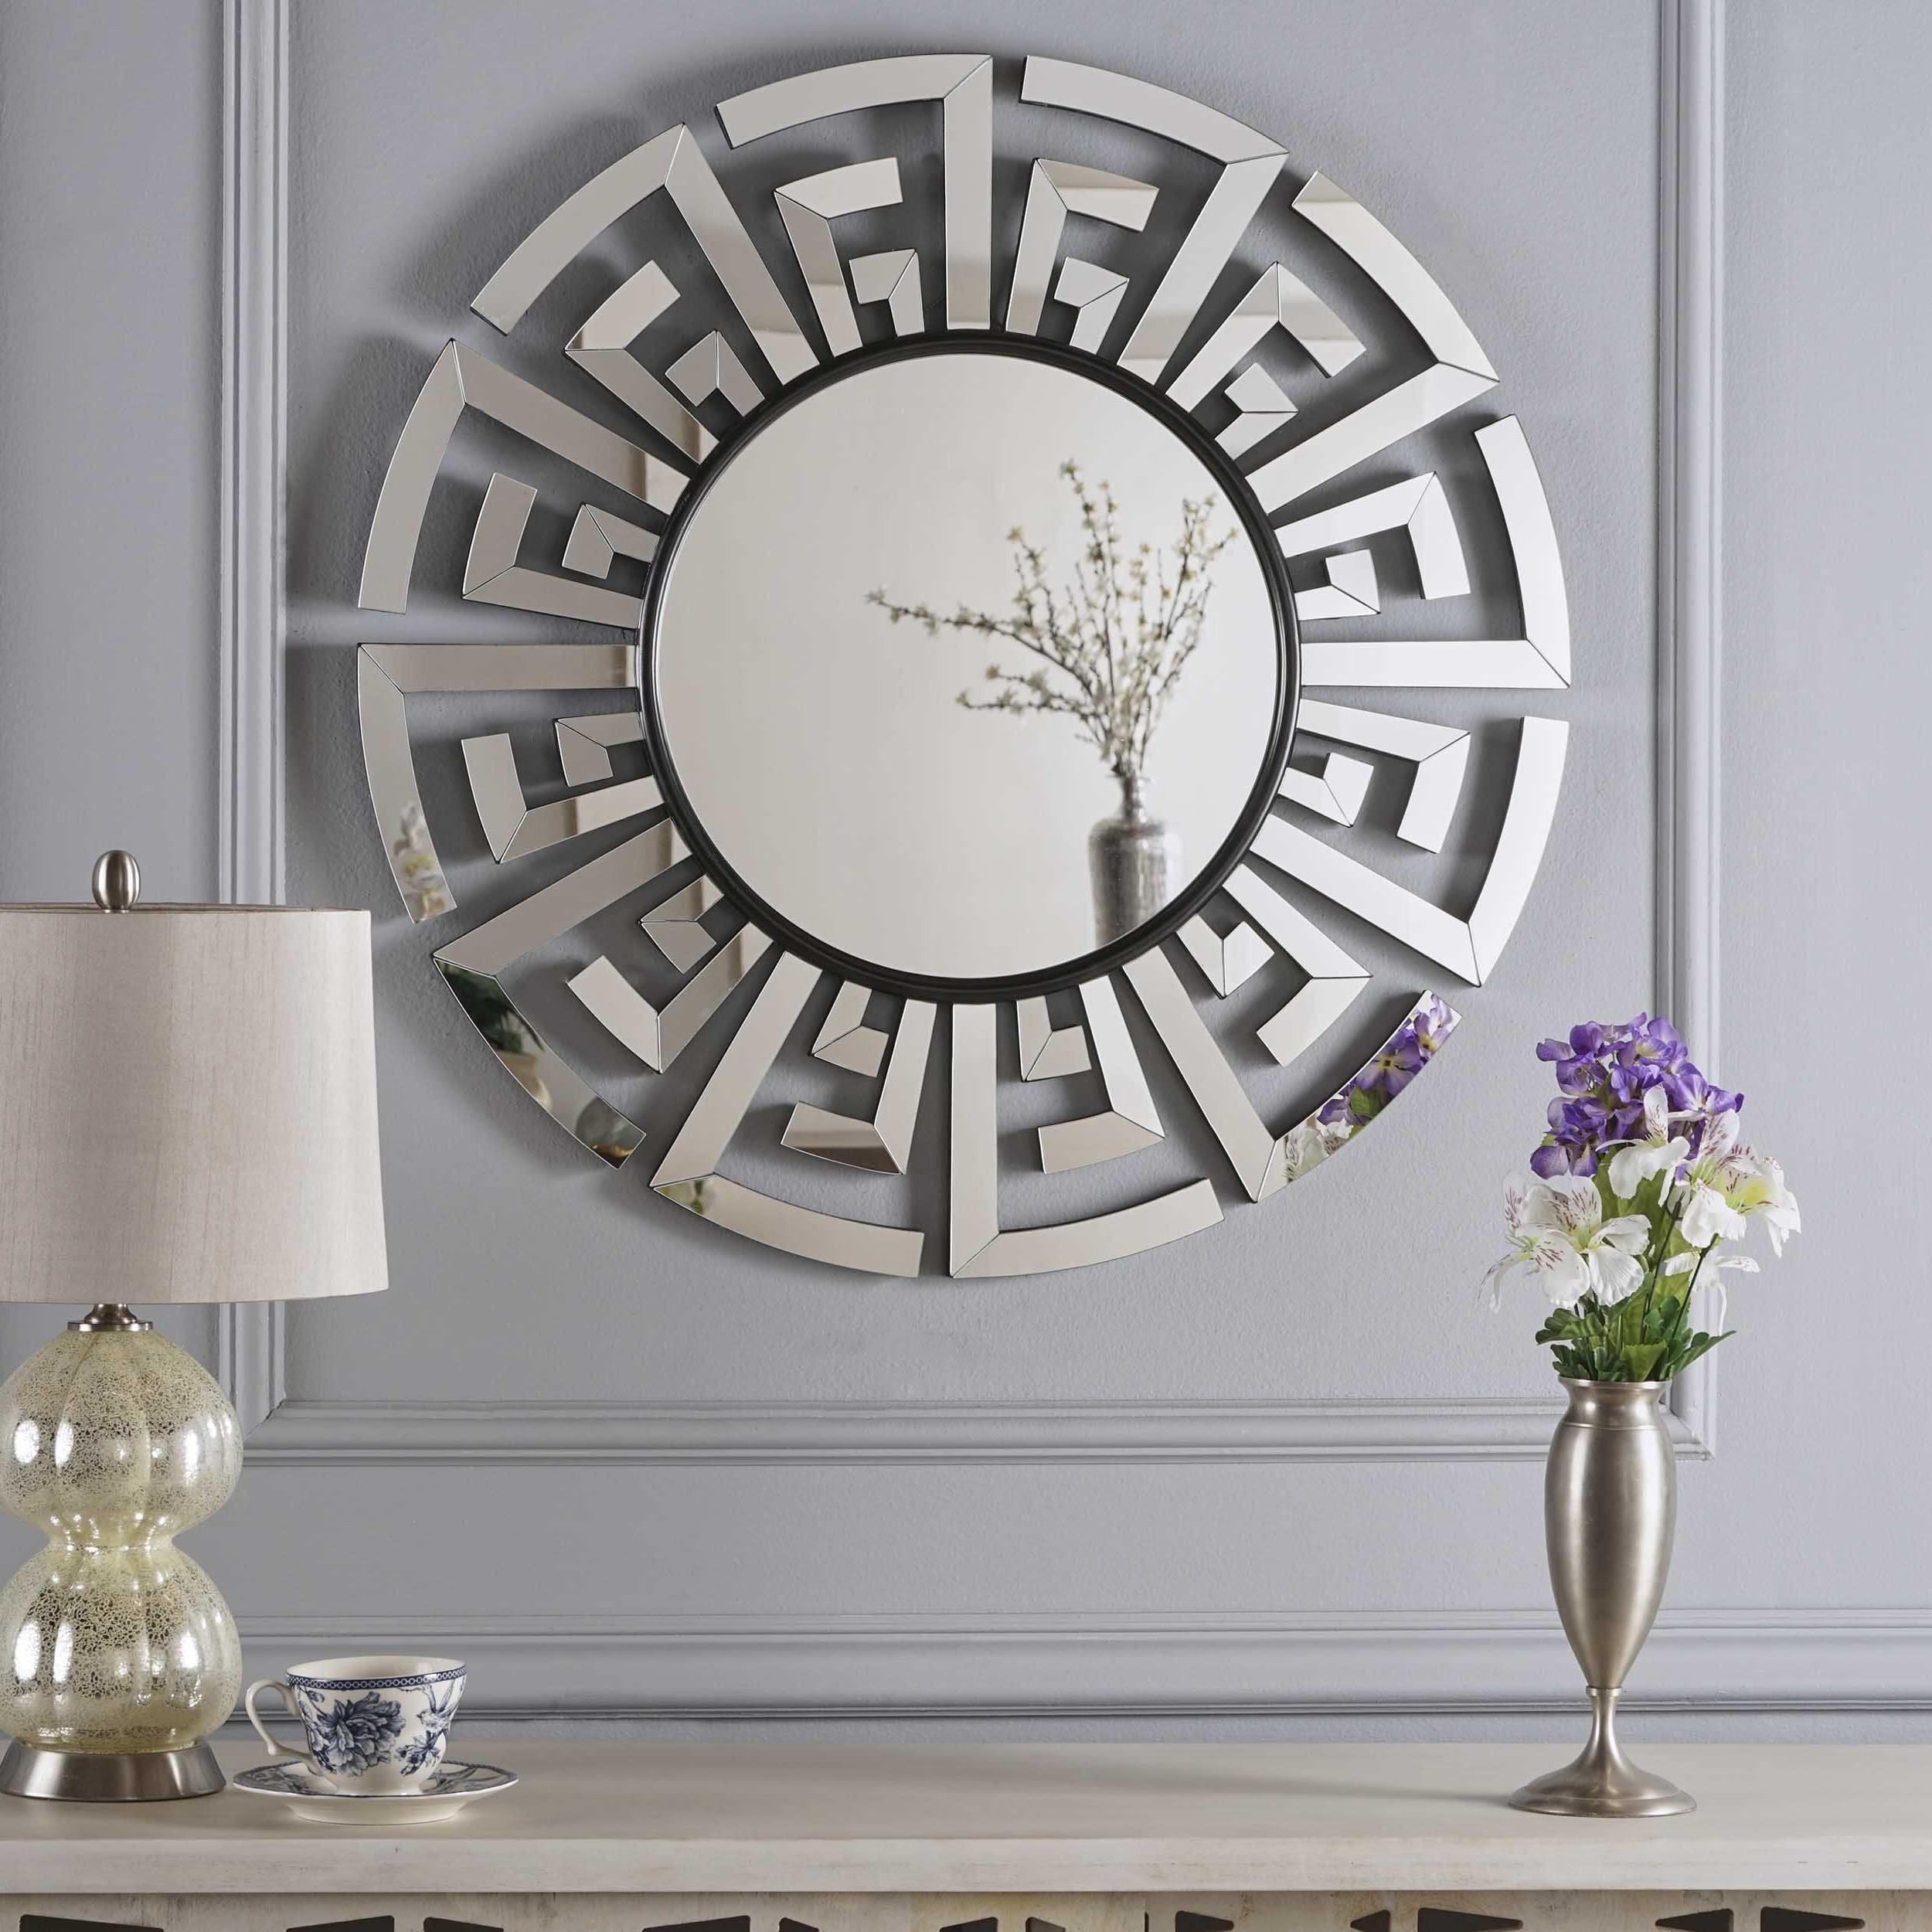 Far East Chinese Inspired Wall Mirror (View 4 of 20)